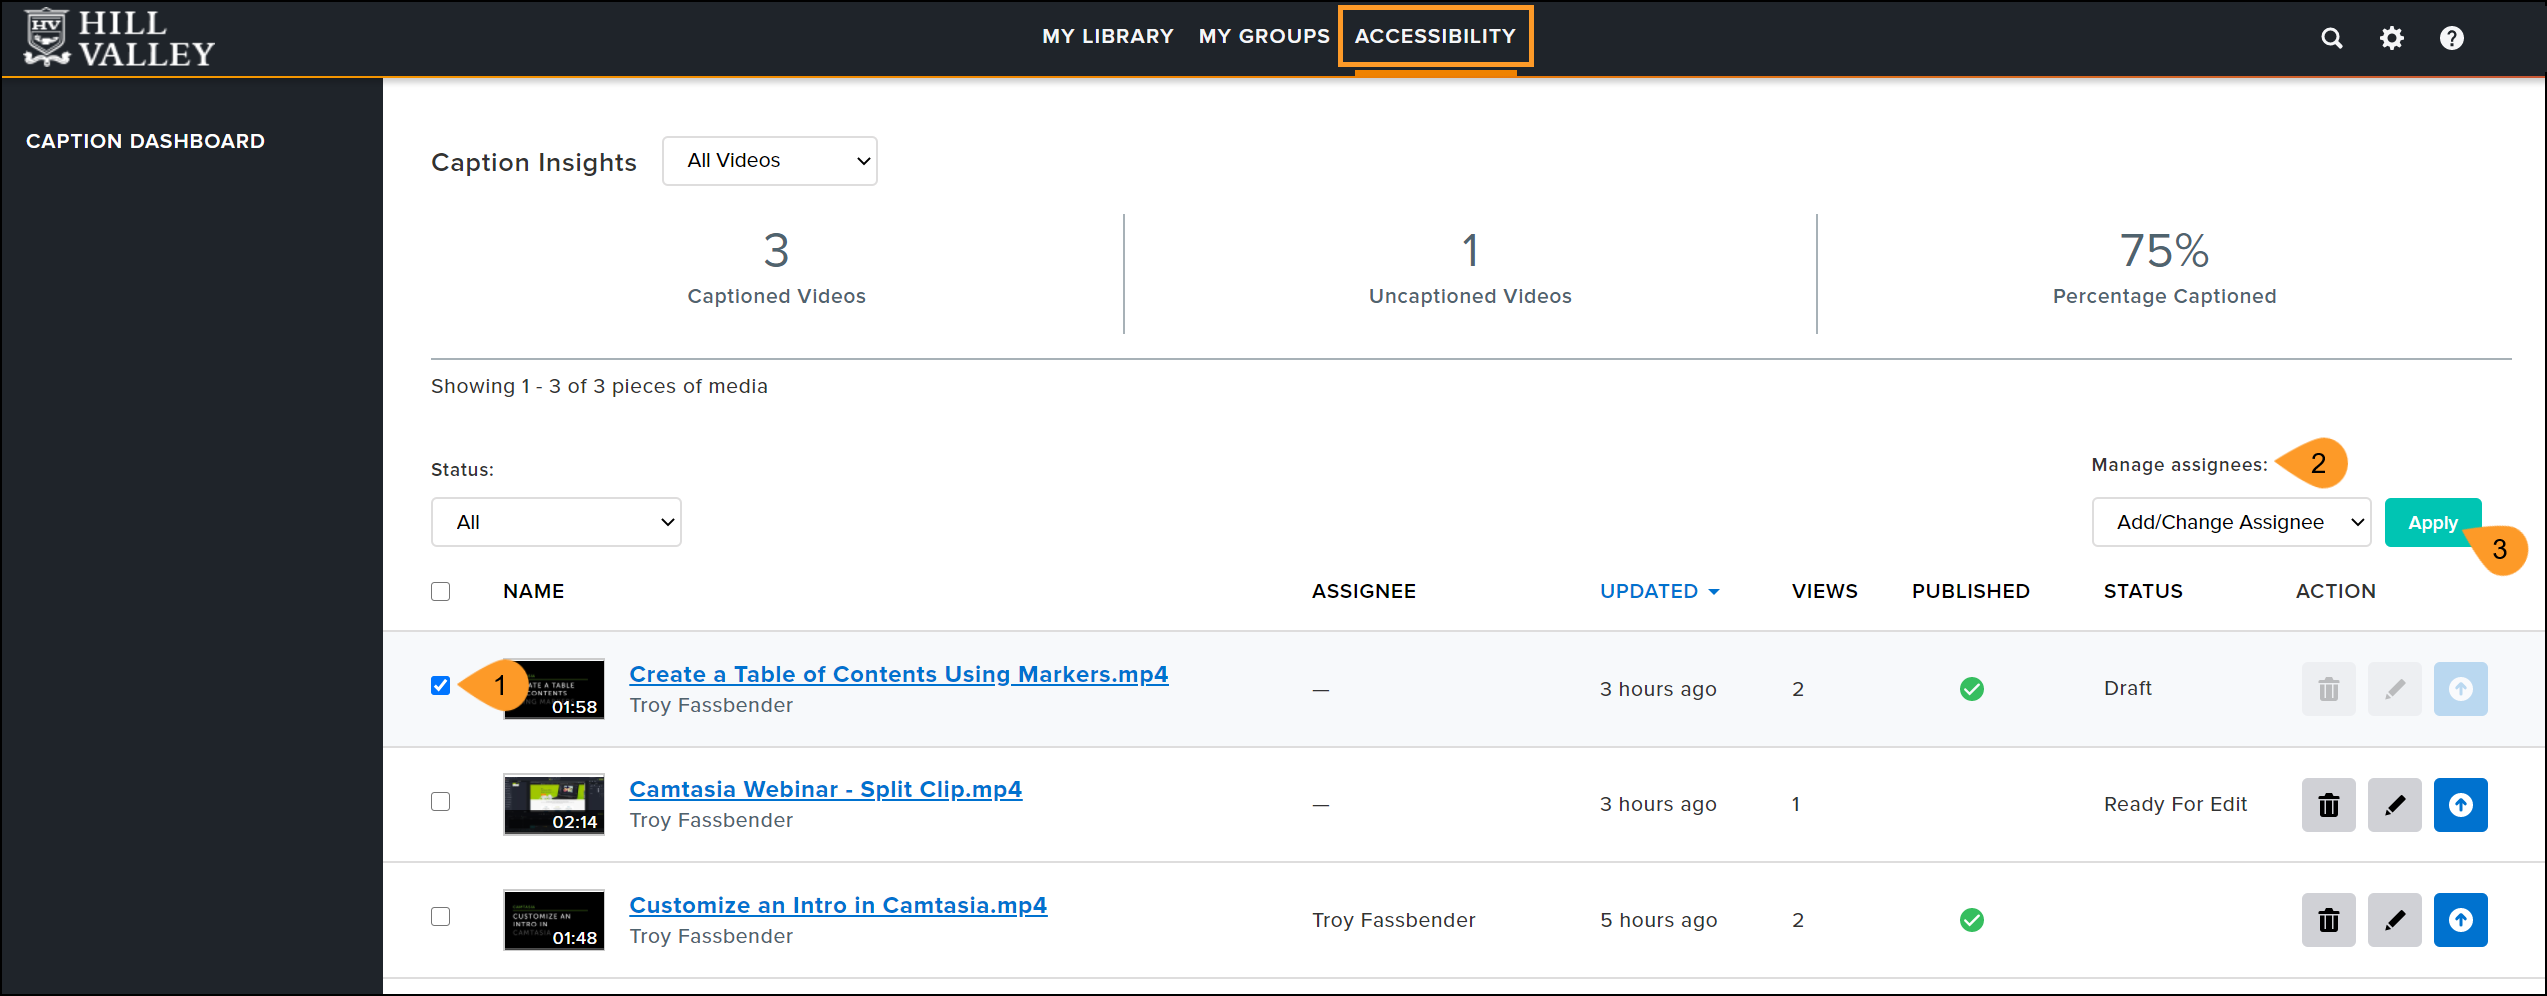 Add or change assignee option in the actions menu